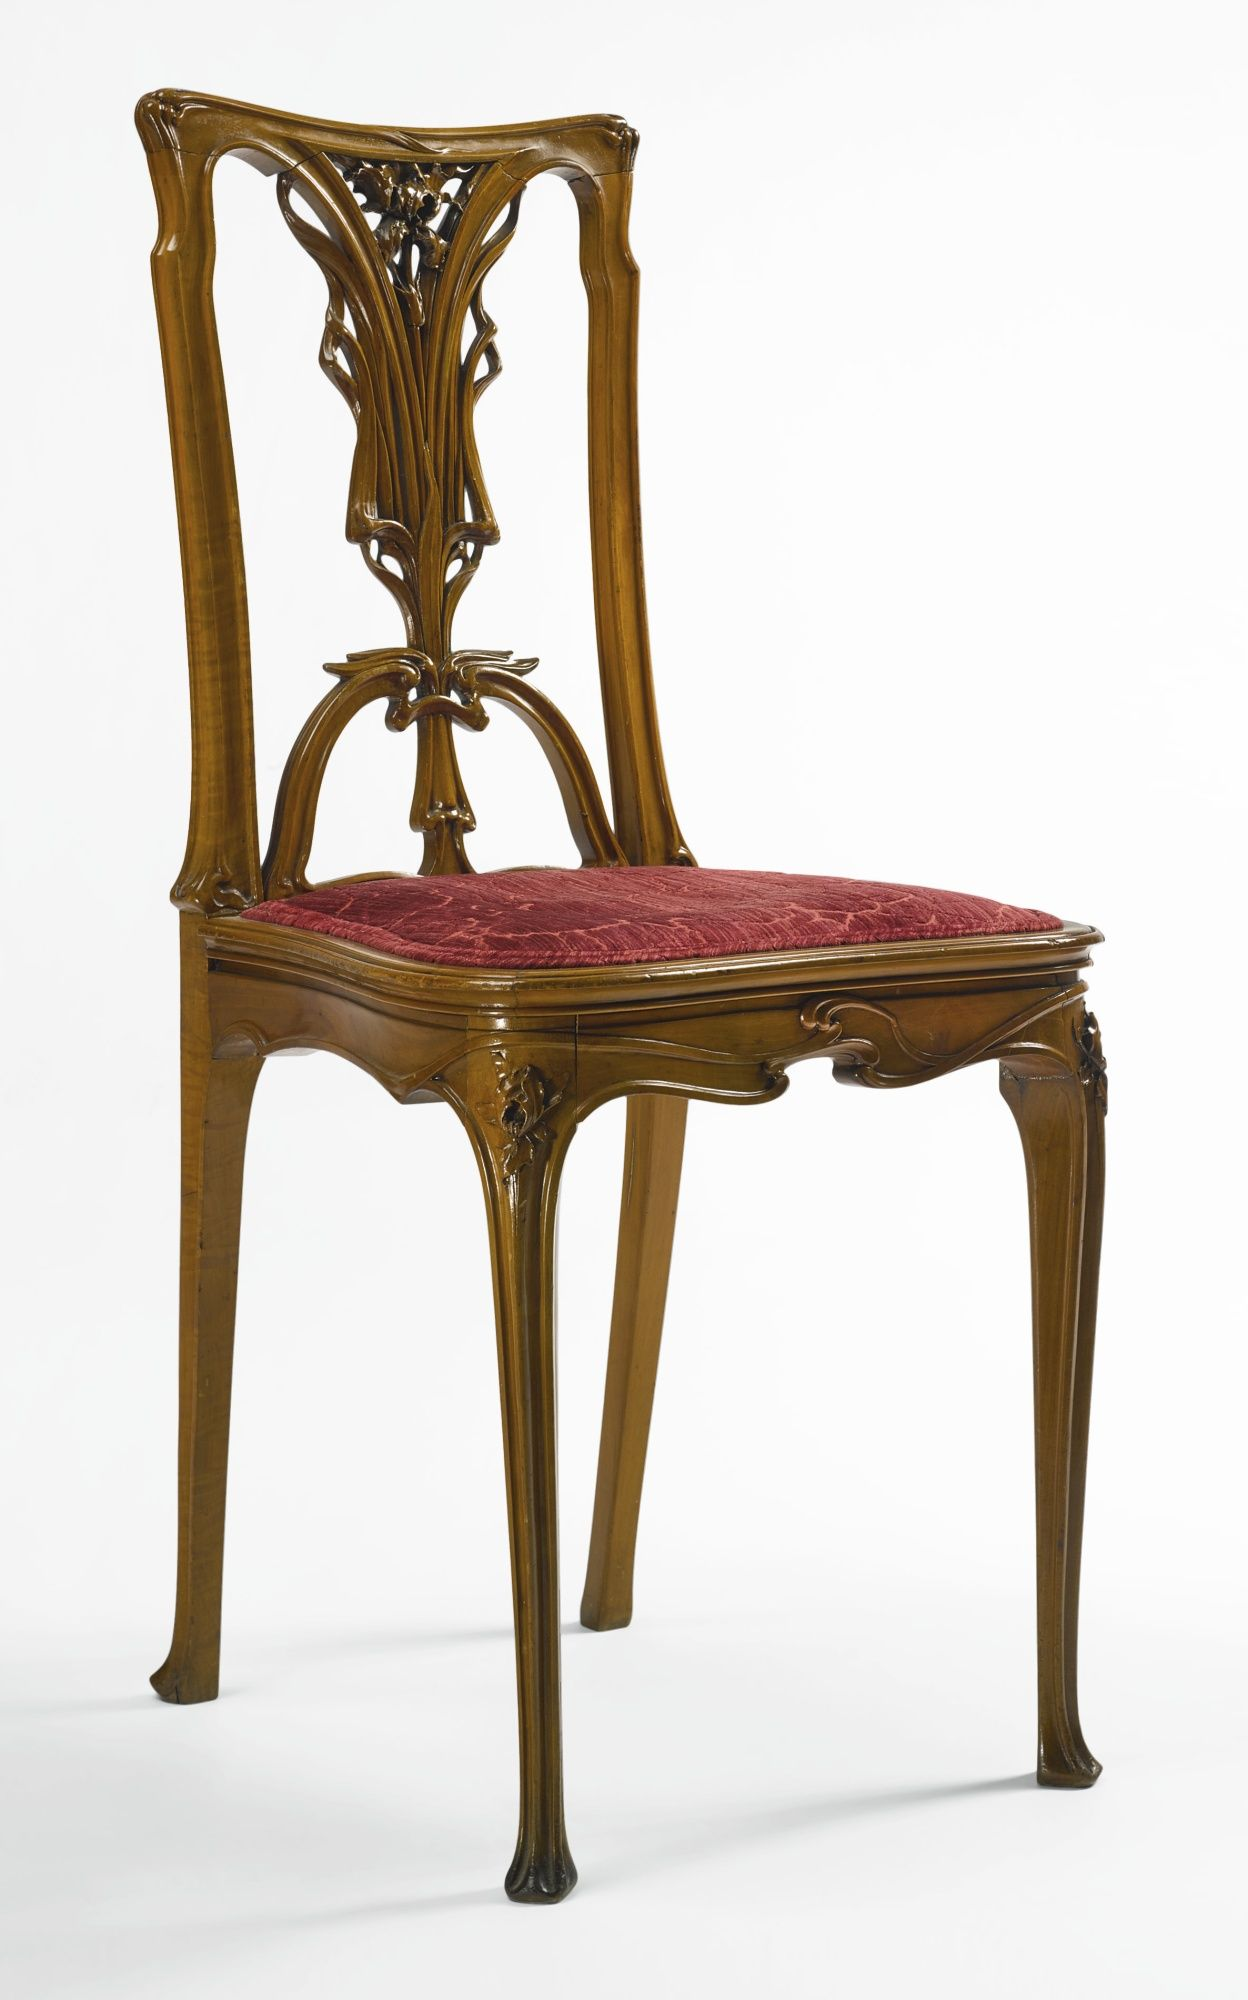 modern art nouveau furniture. Majorelle Louis Iris Chair | Furniture Sotheby\u0027s N09474lot7gmvden. Art Nouveau Modern O